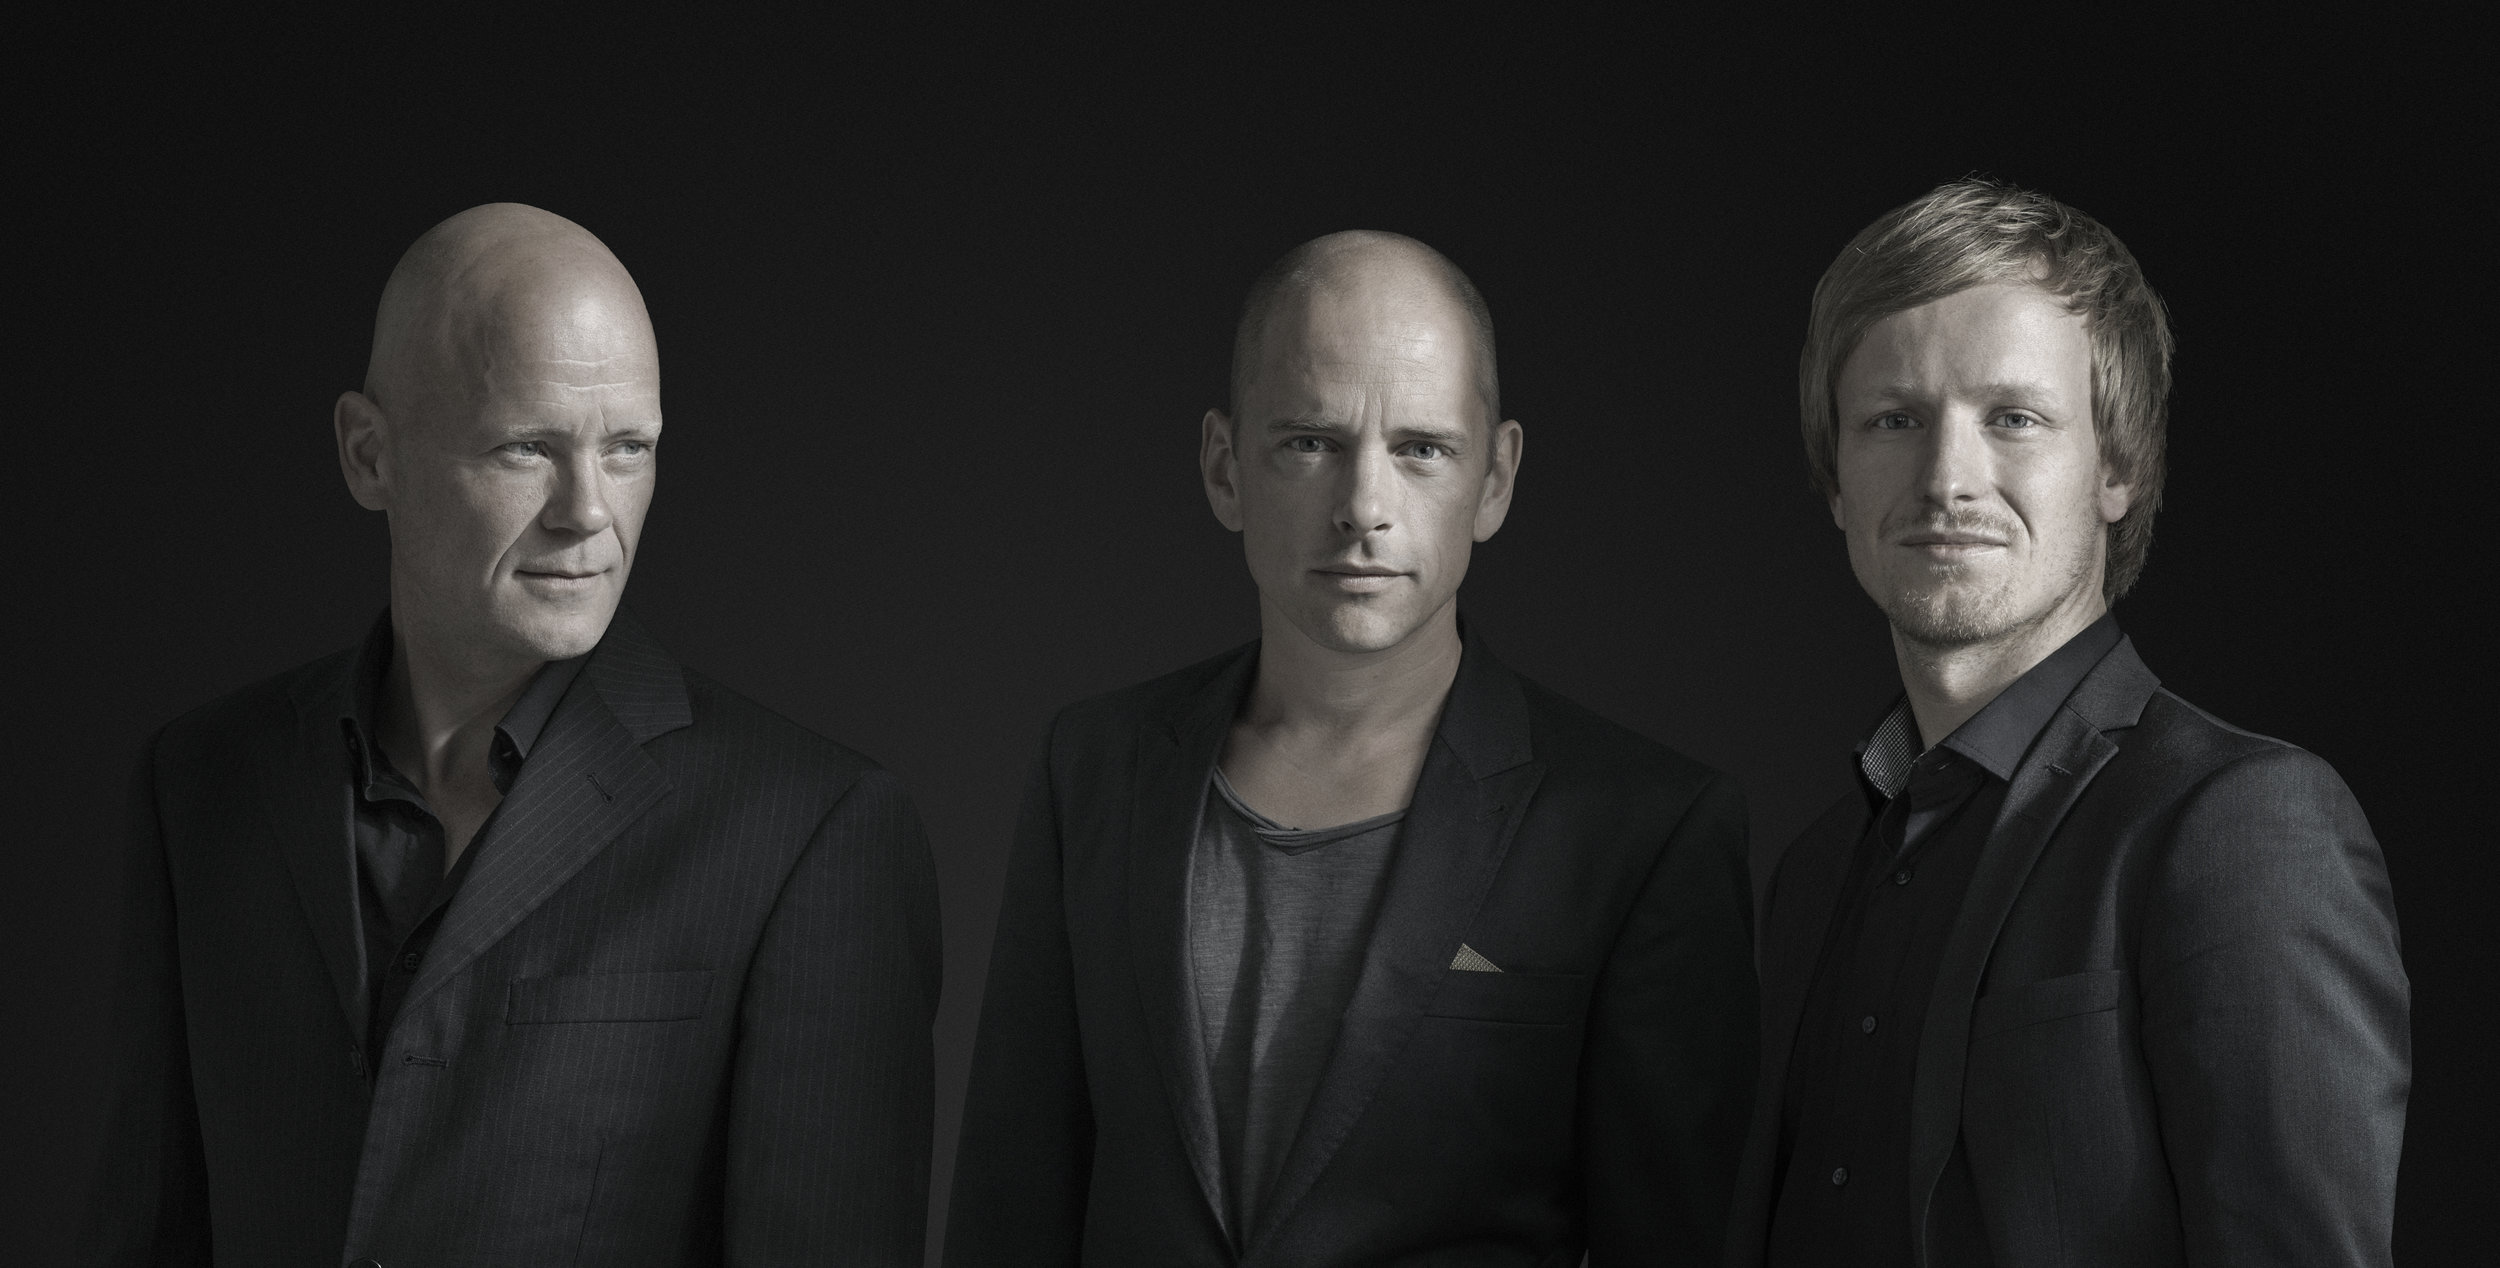 tord_gustavsen_trio_high_res_color_var.jpg